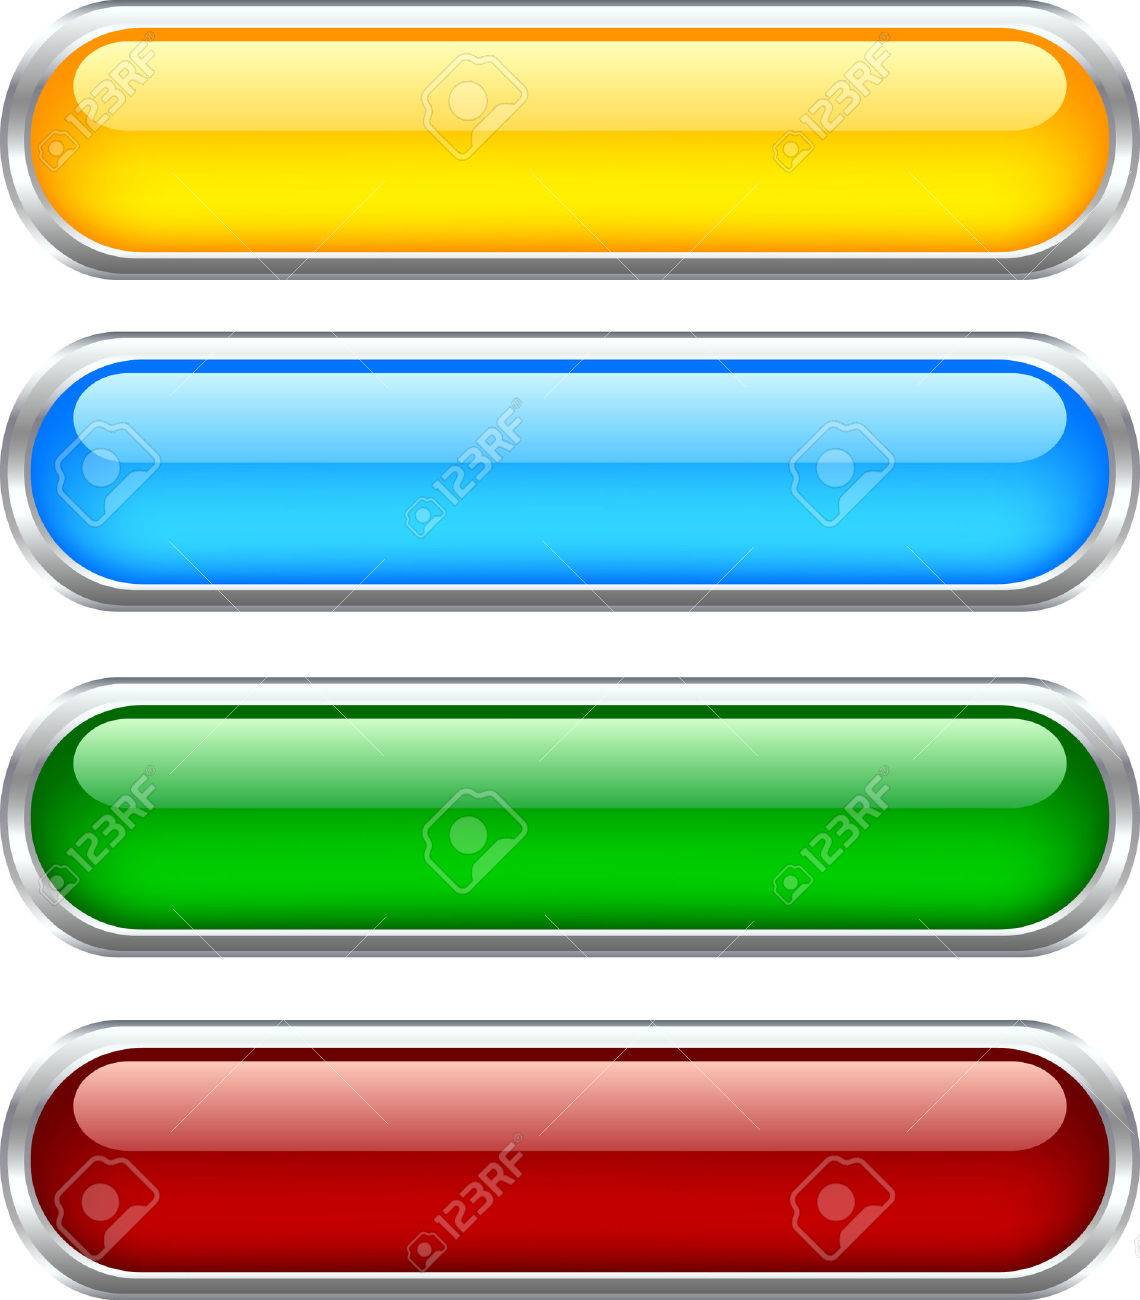 Web shiny buttons. Used mesh. Stock Vector - 4294196